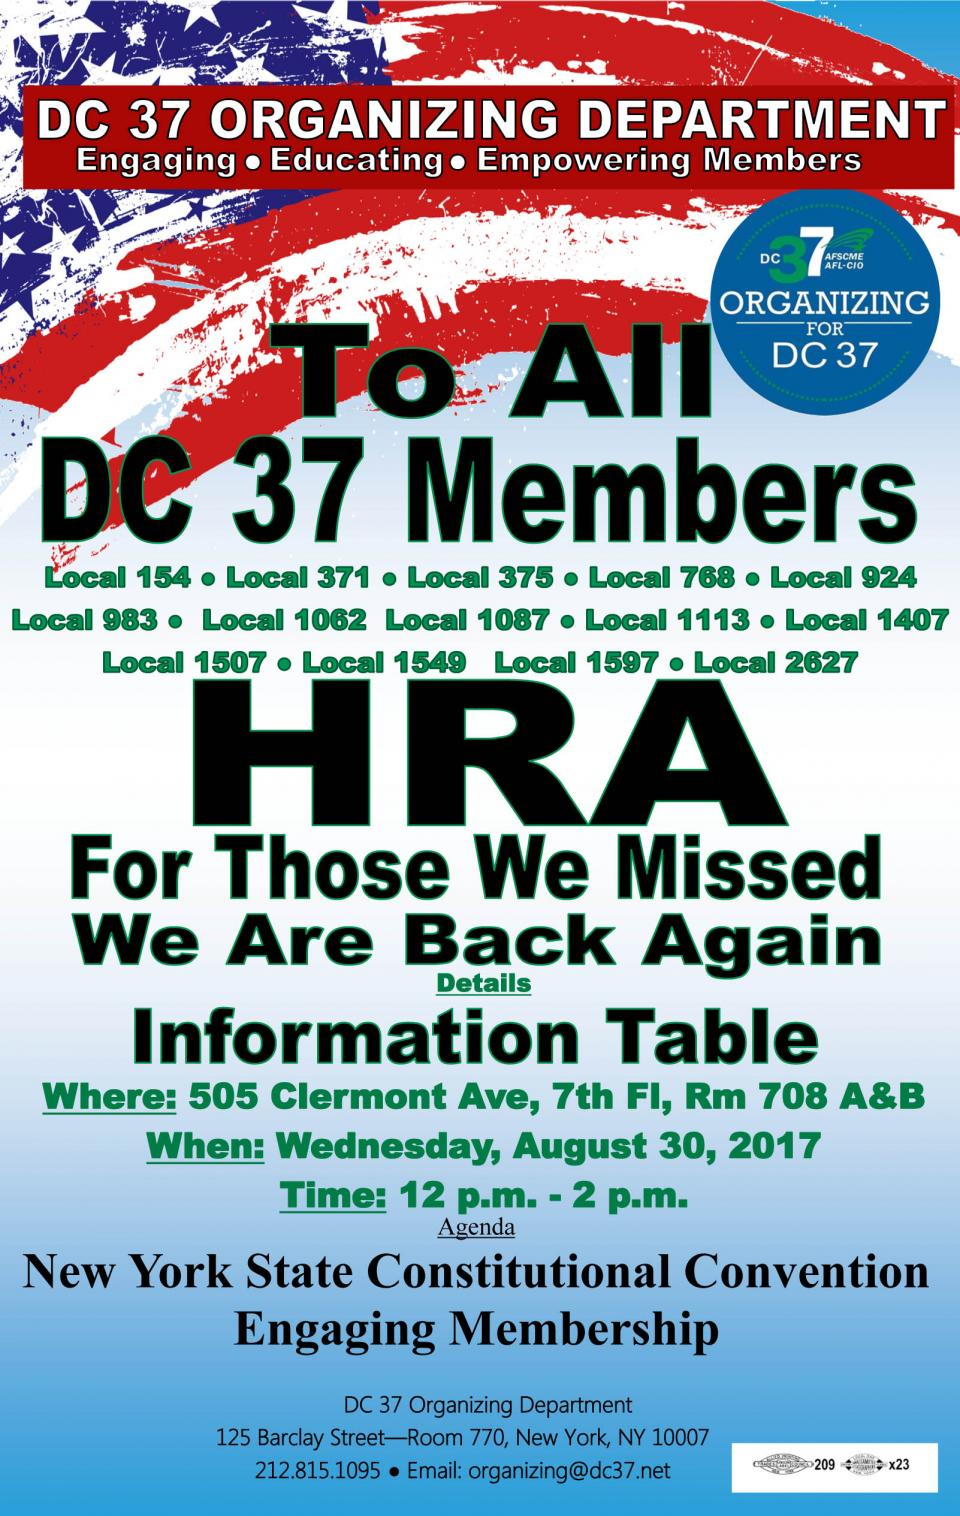 HRA - For Those We Missed We are Back Again | Local 375